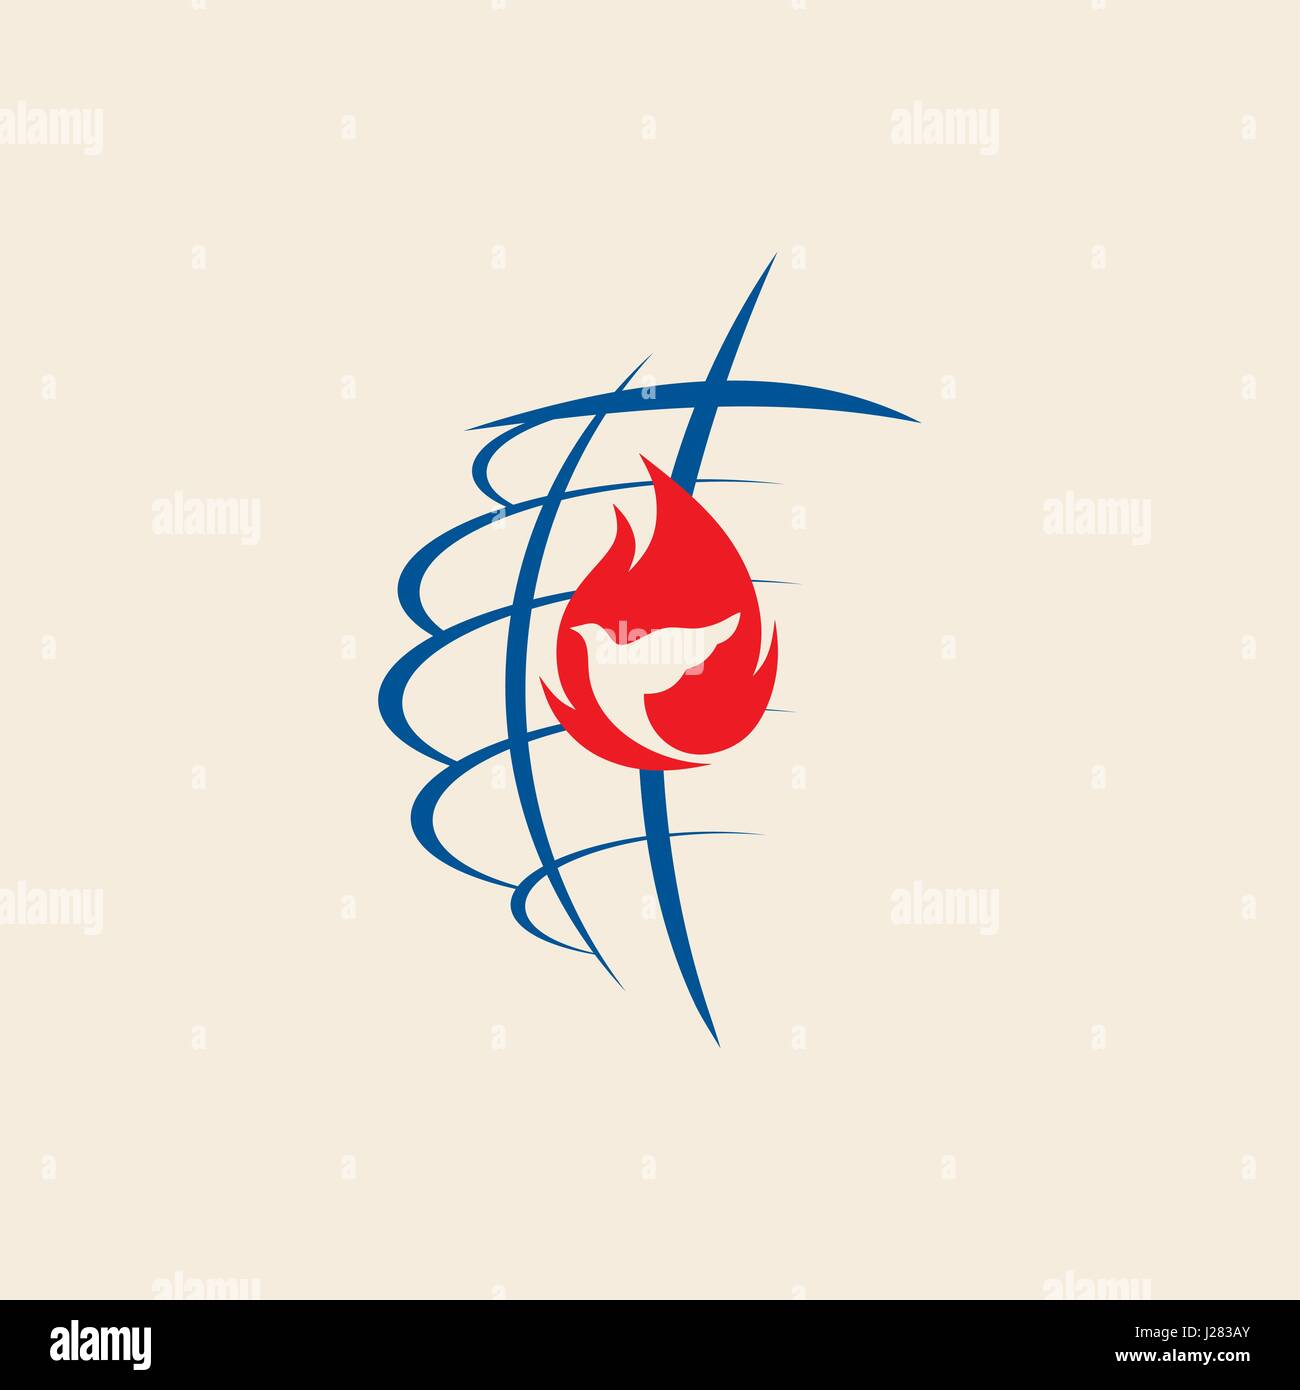 Church logo the cross of jesus the globe and the dove stock vector church logo the cross of jesus the globe and the dove altavistaventures Choice Image